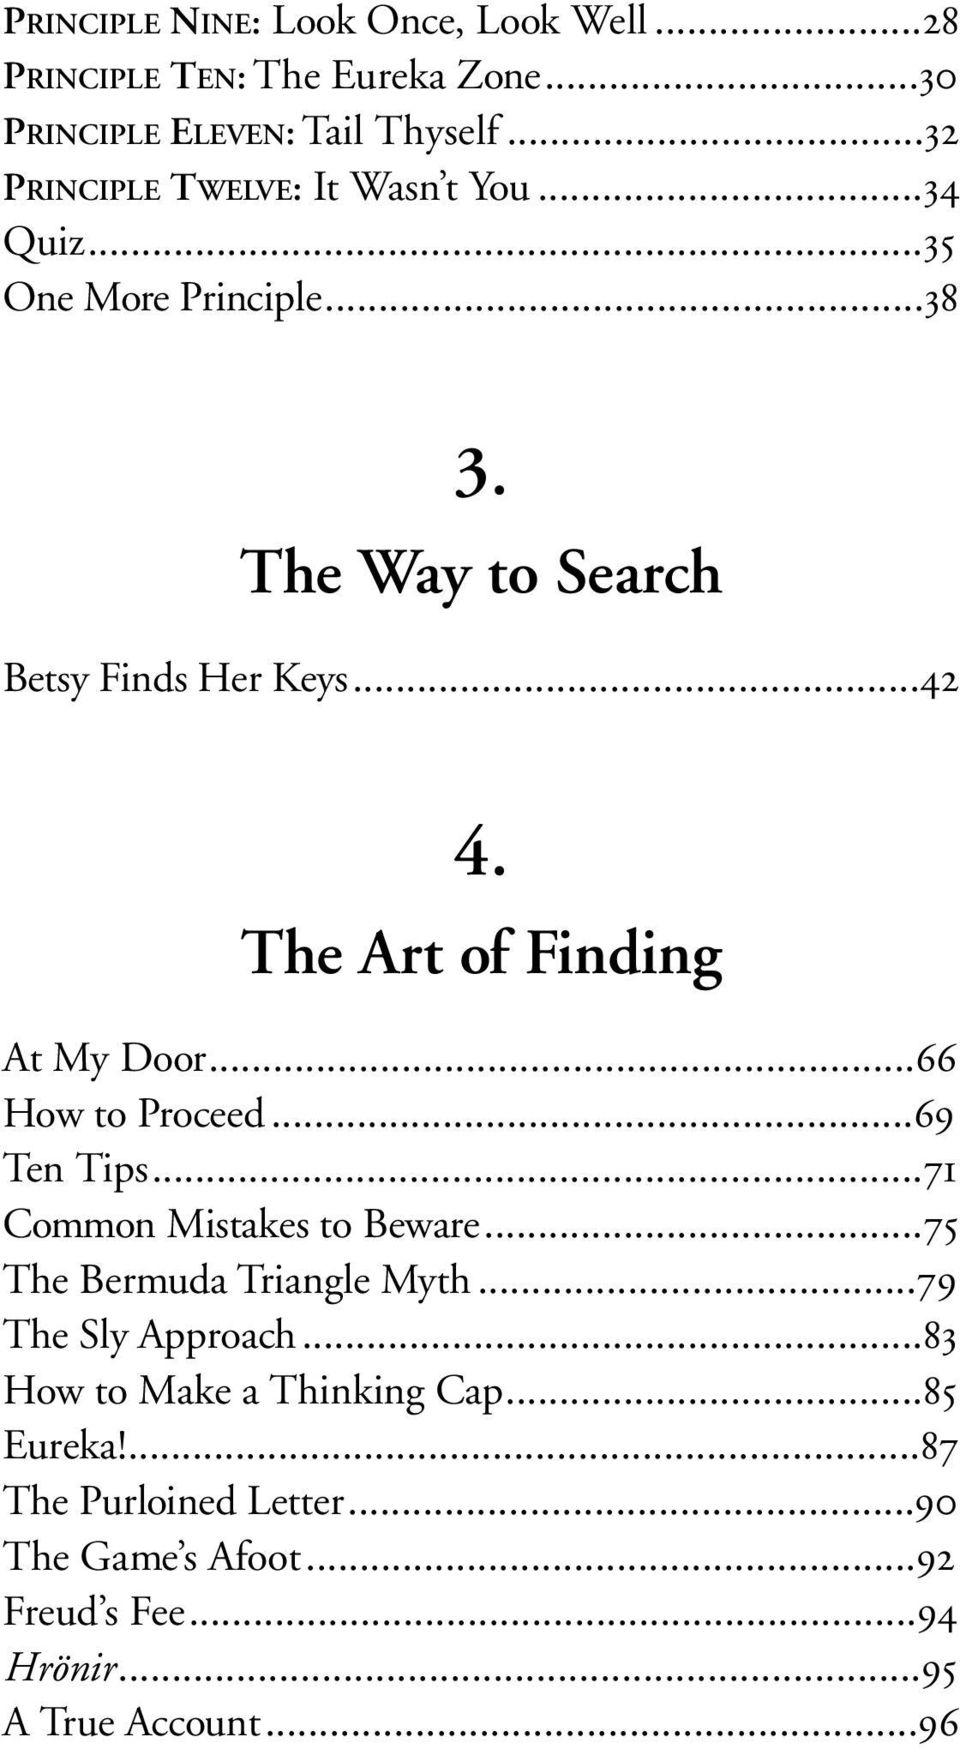 The Art of Finding At My Door...66 How to Proceed...69 Ten Tips...71 Common Mistakes to Beware...75 The Bermuda Triangle Myth.